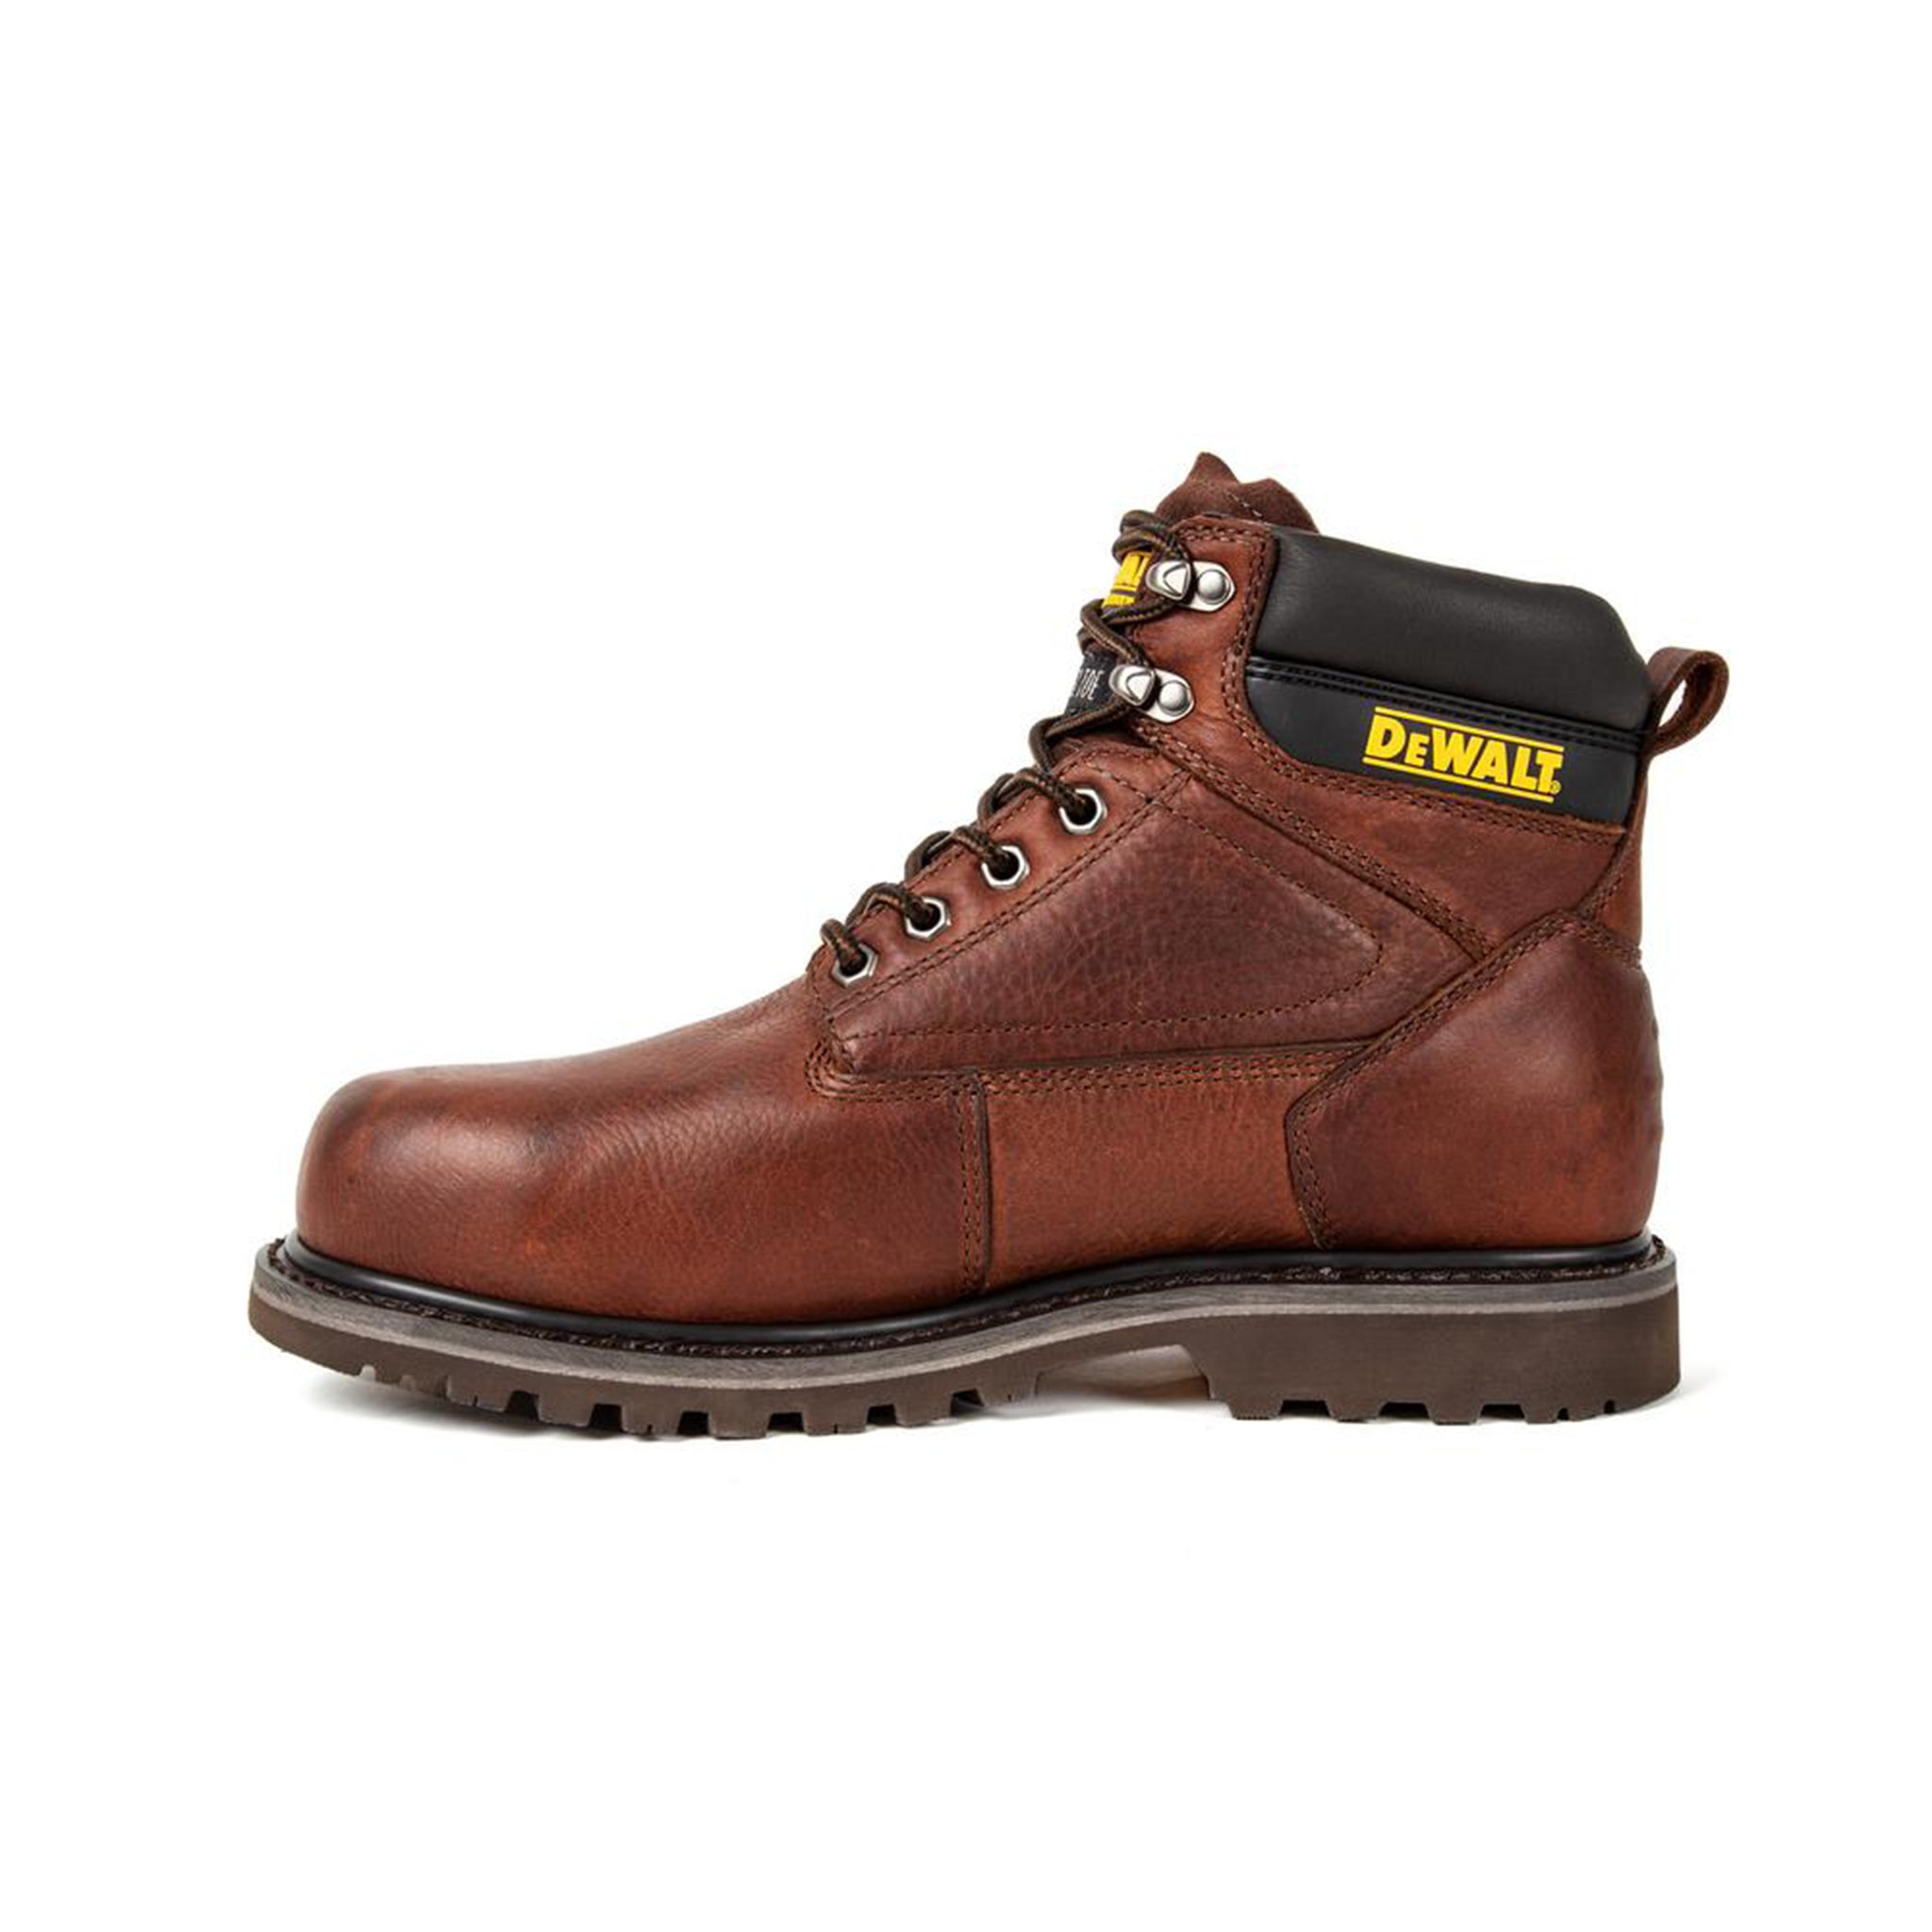 Dewalt Men S Axle Walnut Pitstop Leather Steel Toe Waterproof Work Boo That Shoe Store And More